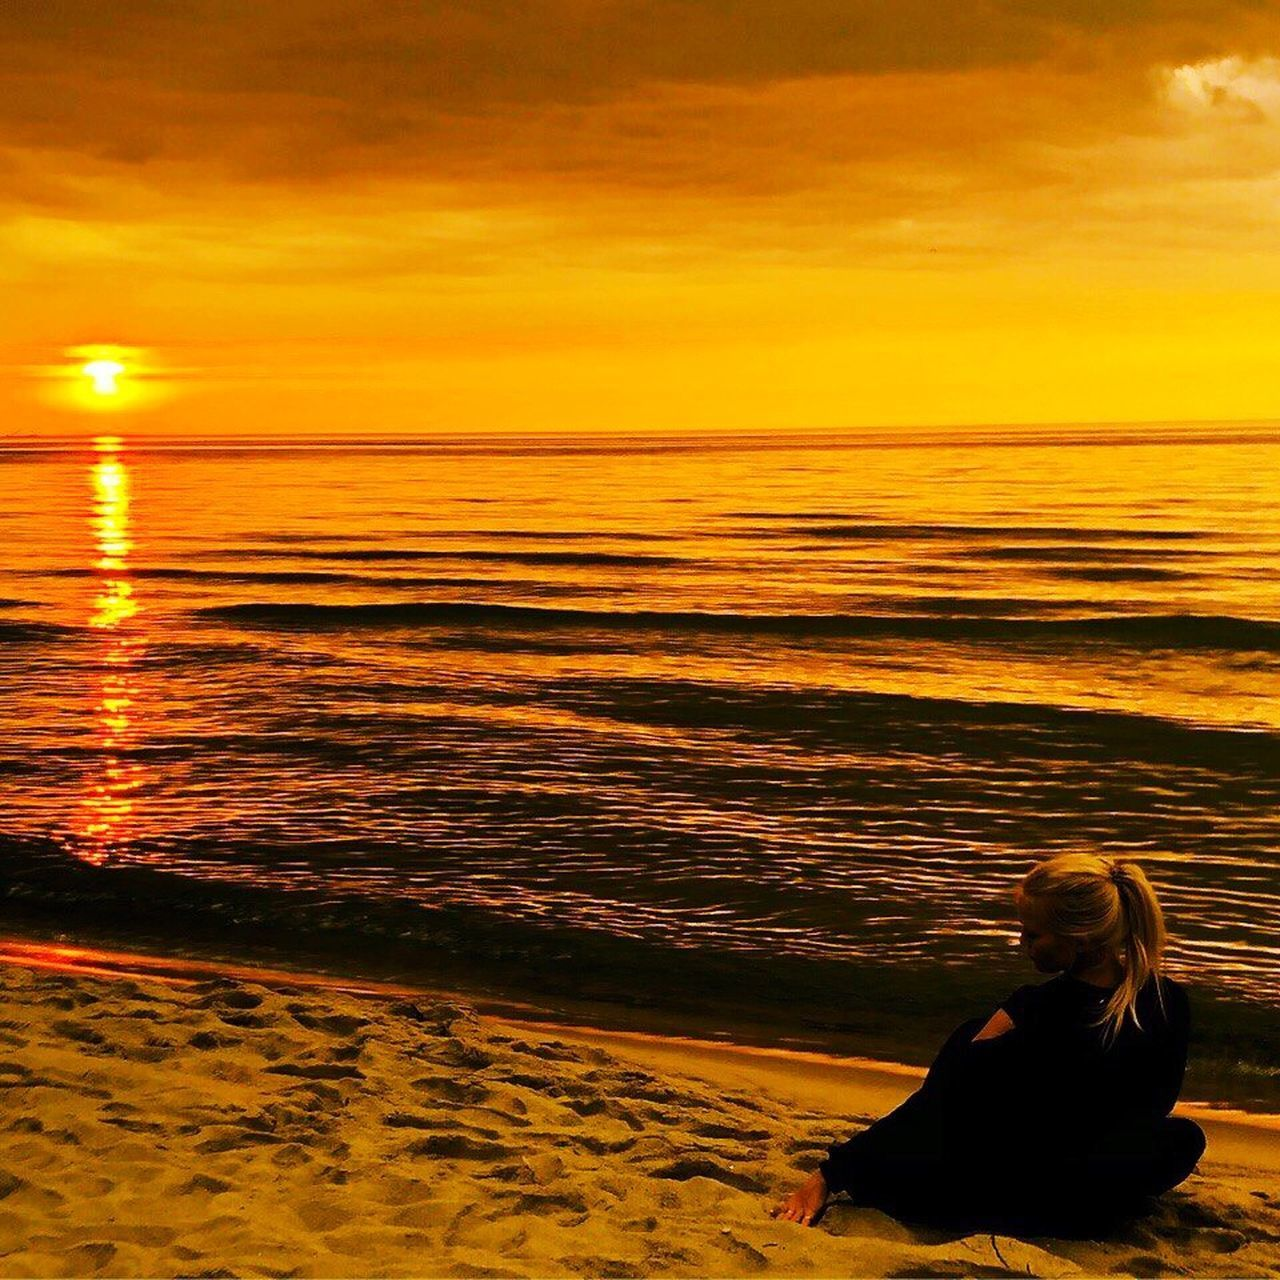 sunset, sea, sky, water, orange color, lifestyles, beauty in nature, sitting, scenics - nature, beach, land, leisure activity, one person, real people, horizon over water, nature, women, idyllic, outdoors, hairstyle